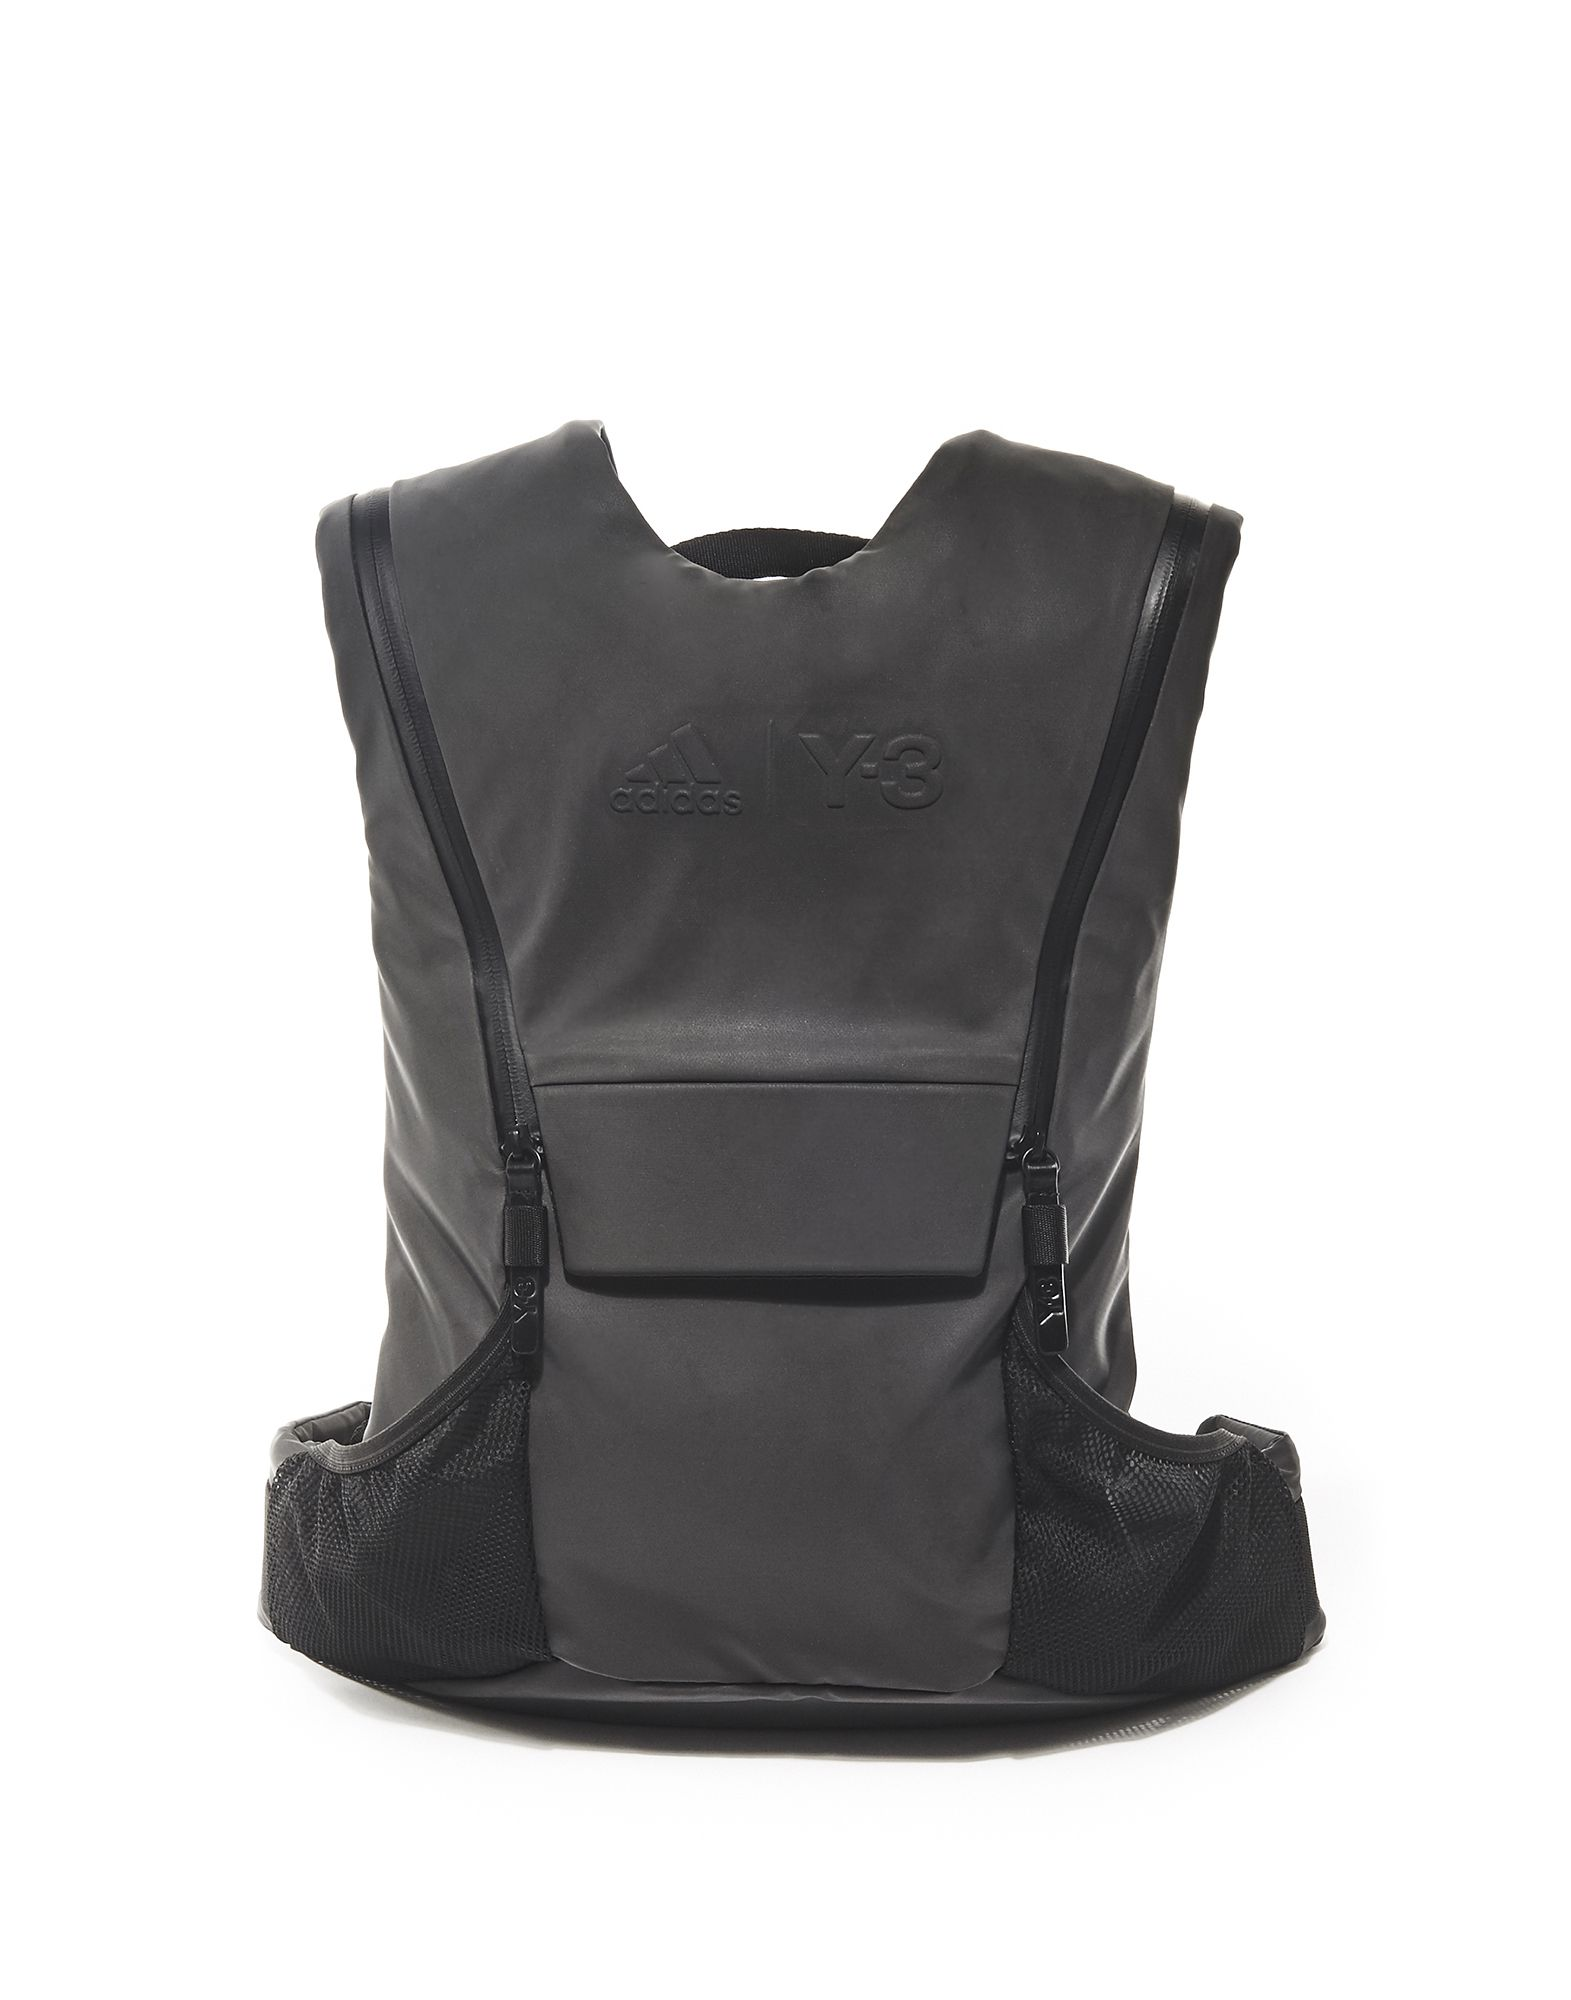 7304c06b99a9 ... Y-3 SPORT Y-3 SPORT RUNNING BACKPACK Backpack E f ...